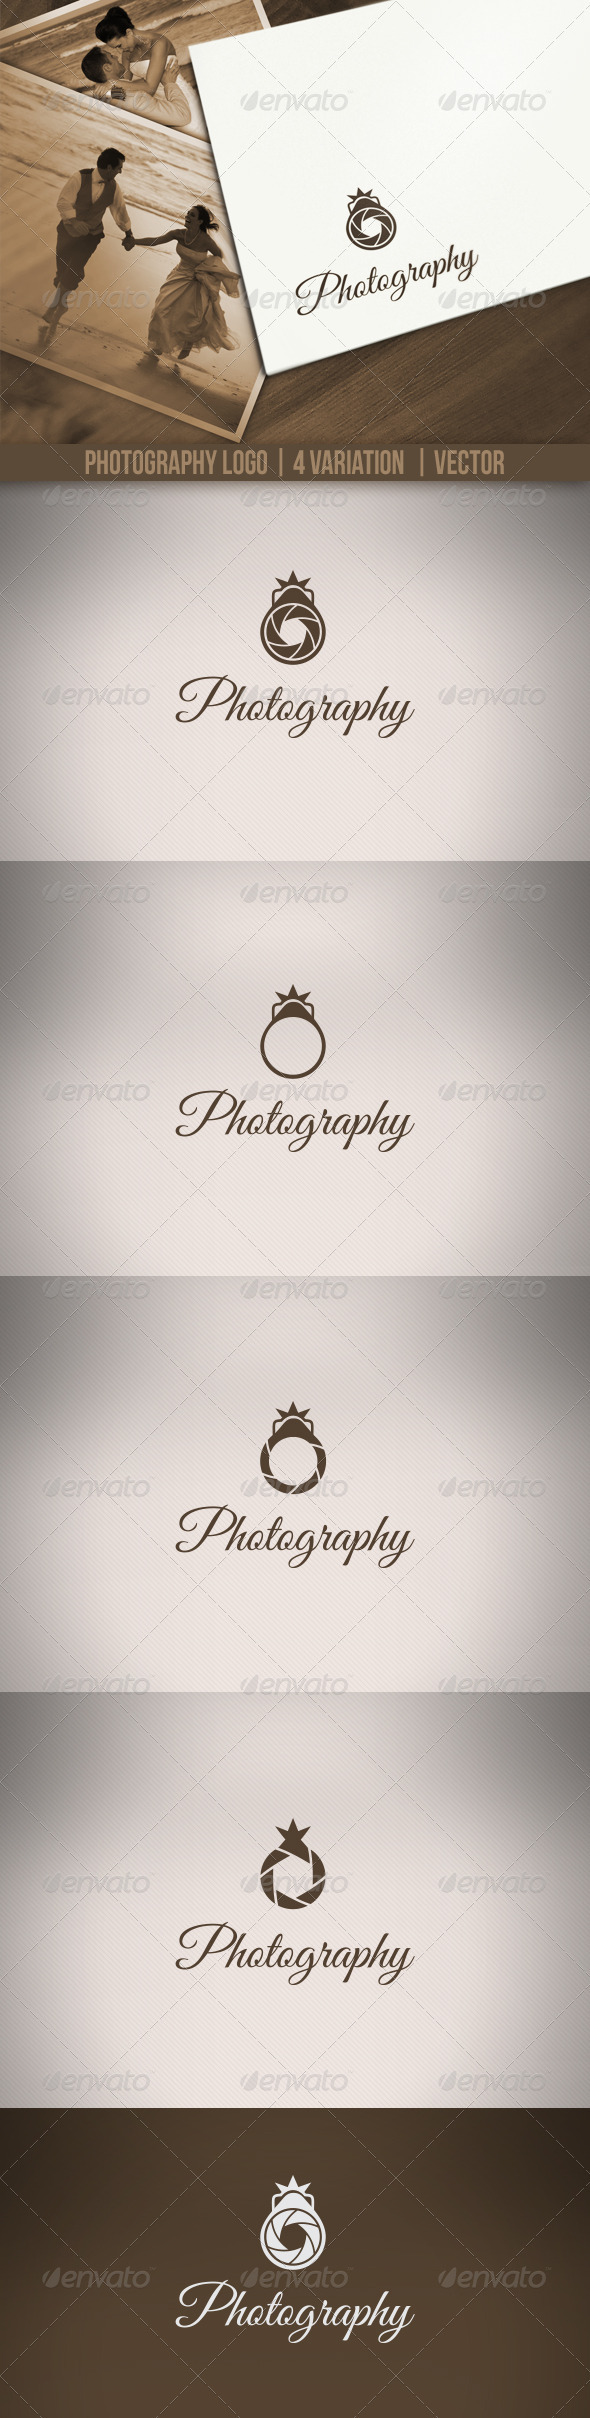 GraphicRiver Photography Logos 3445627